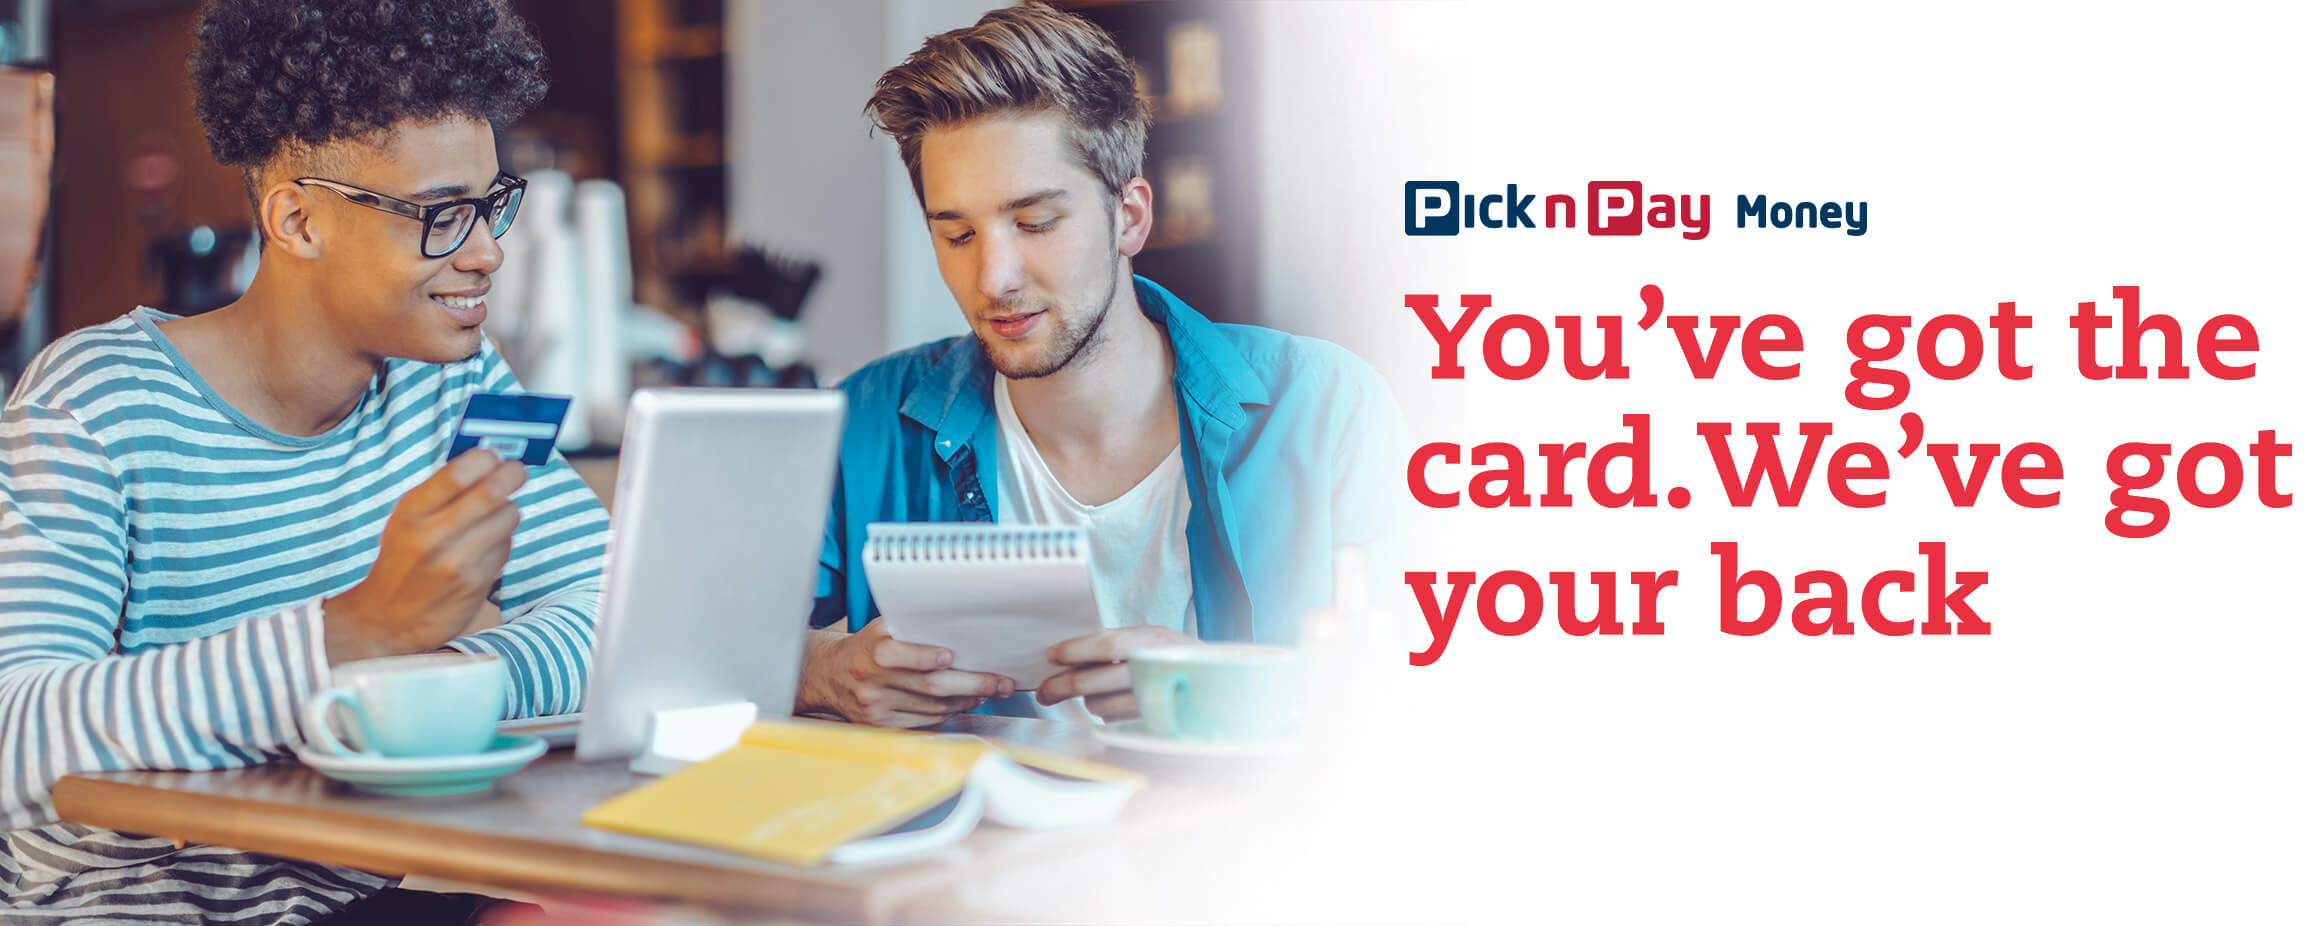 You've got the card. We've got your back